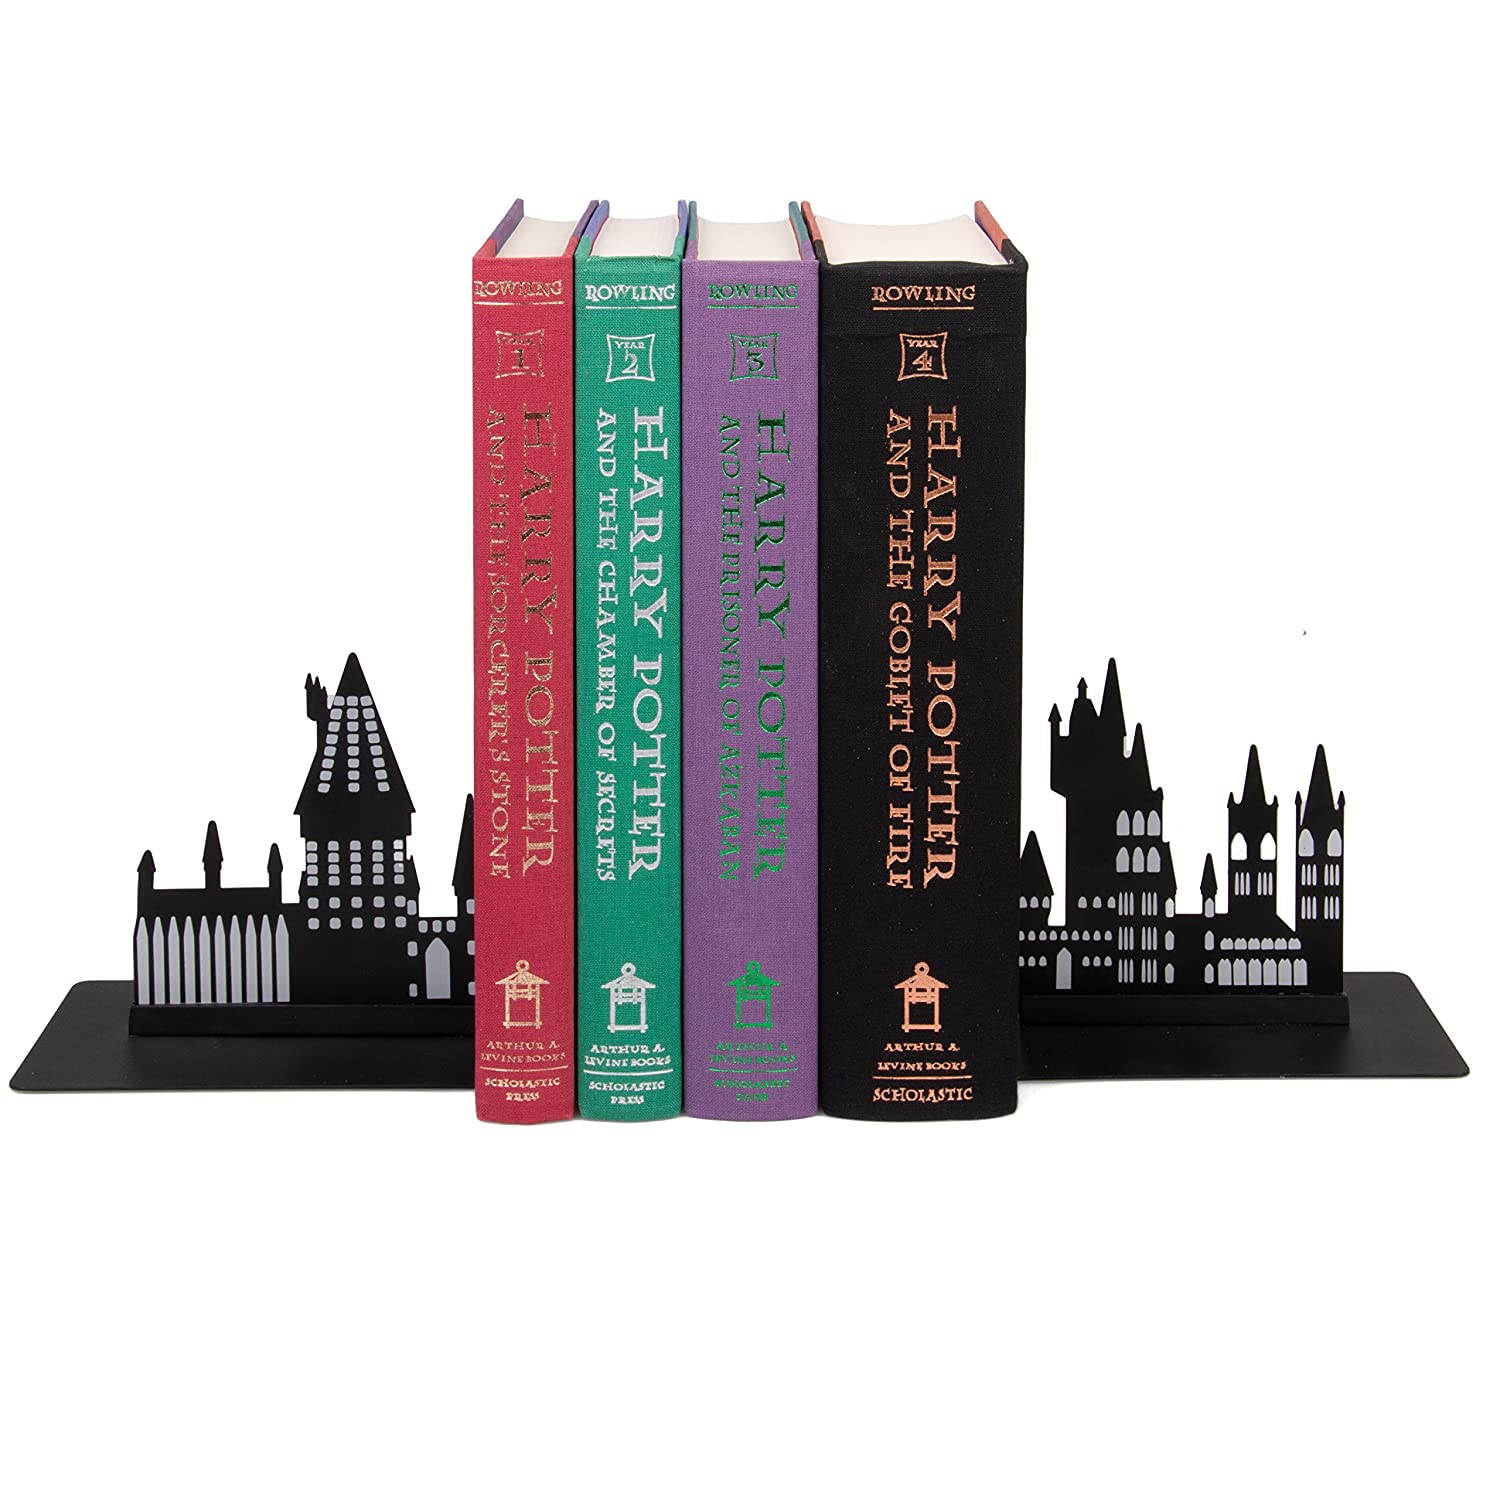 Harry Potter Hogwarts Bookends - Decorative Metal Hogwarts School Castle Design Seven20